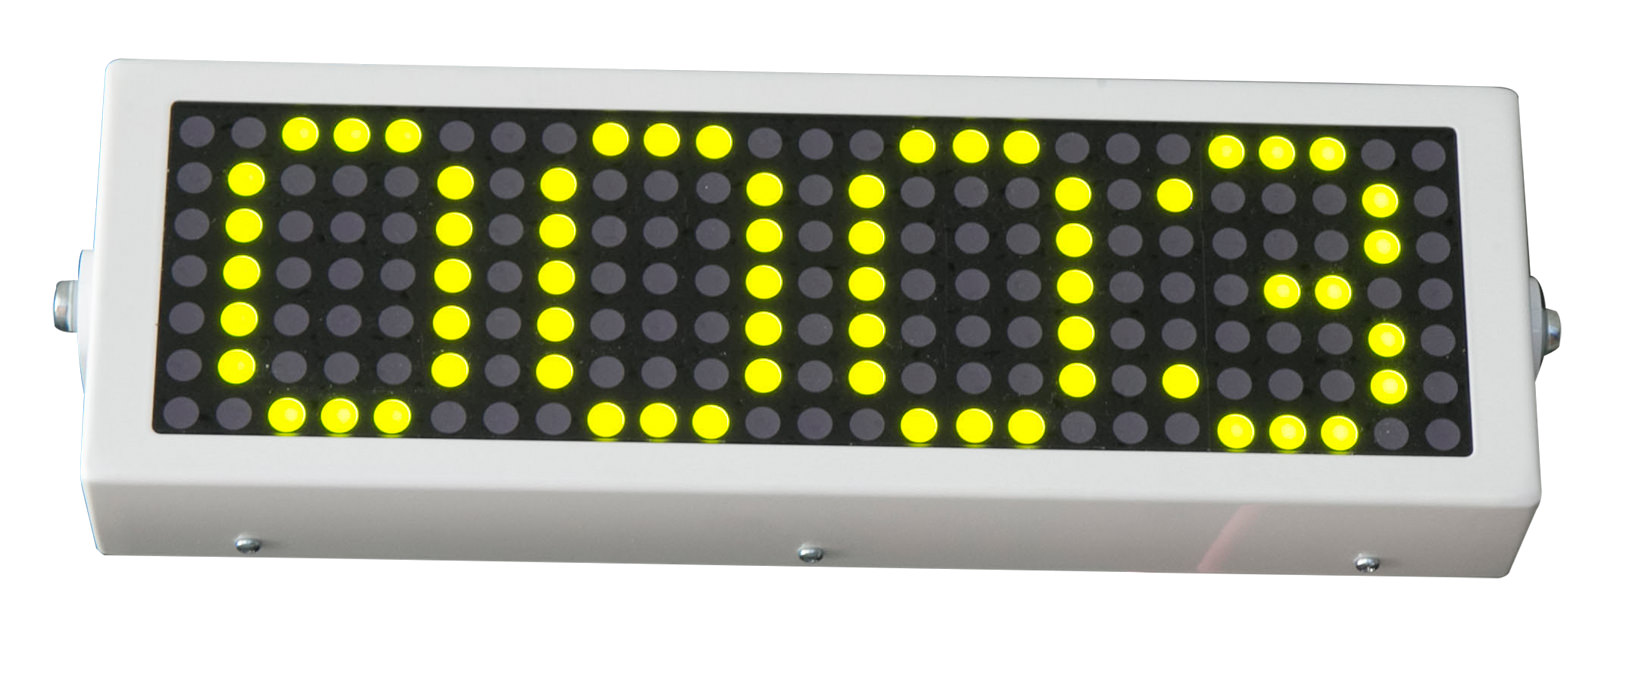 annunciator-4-character-display